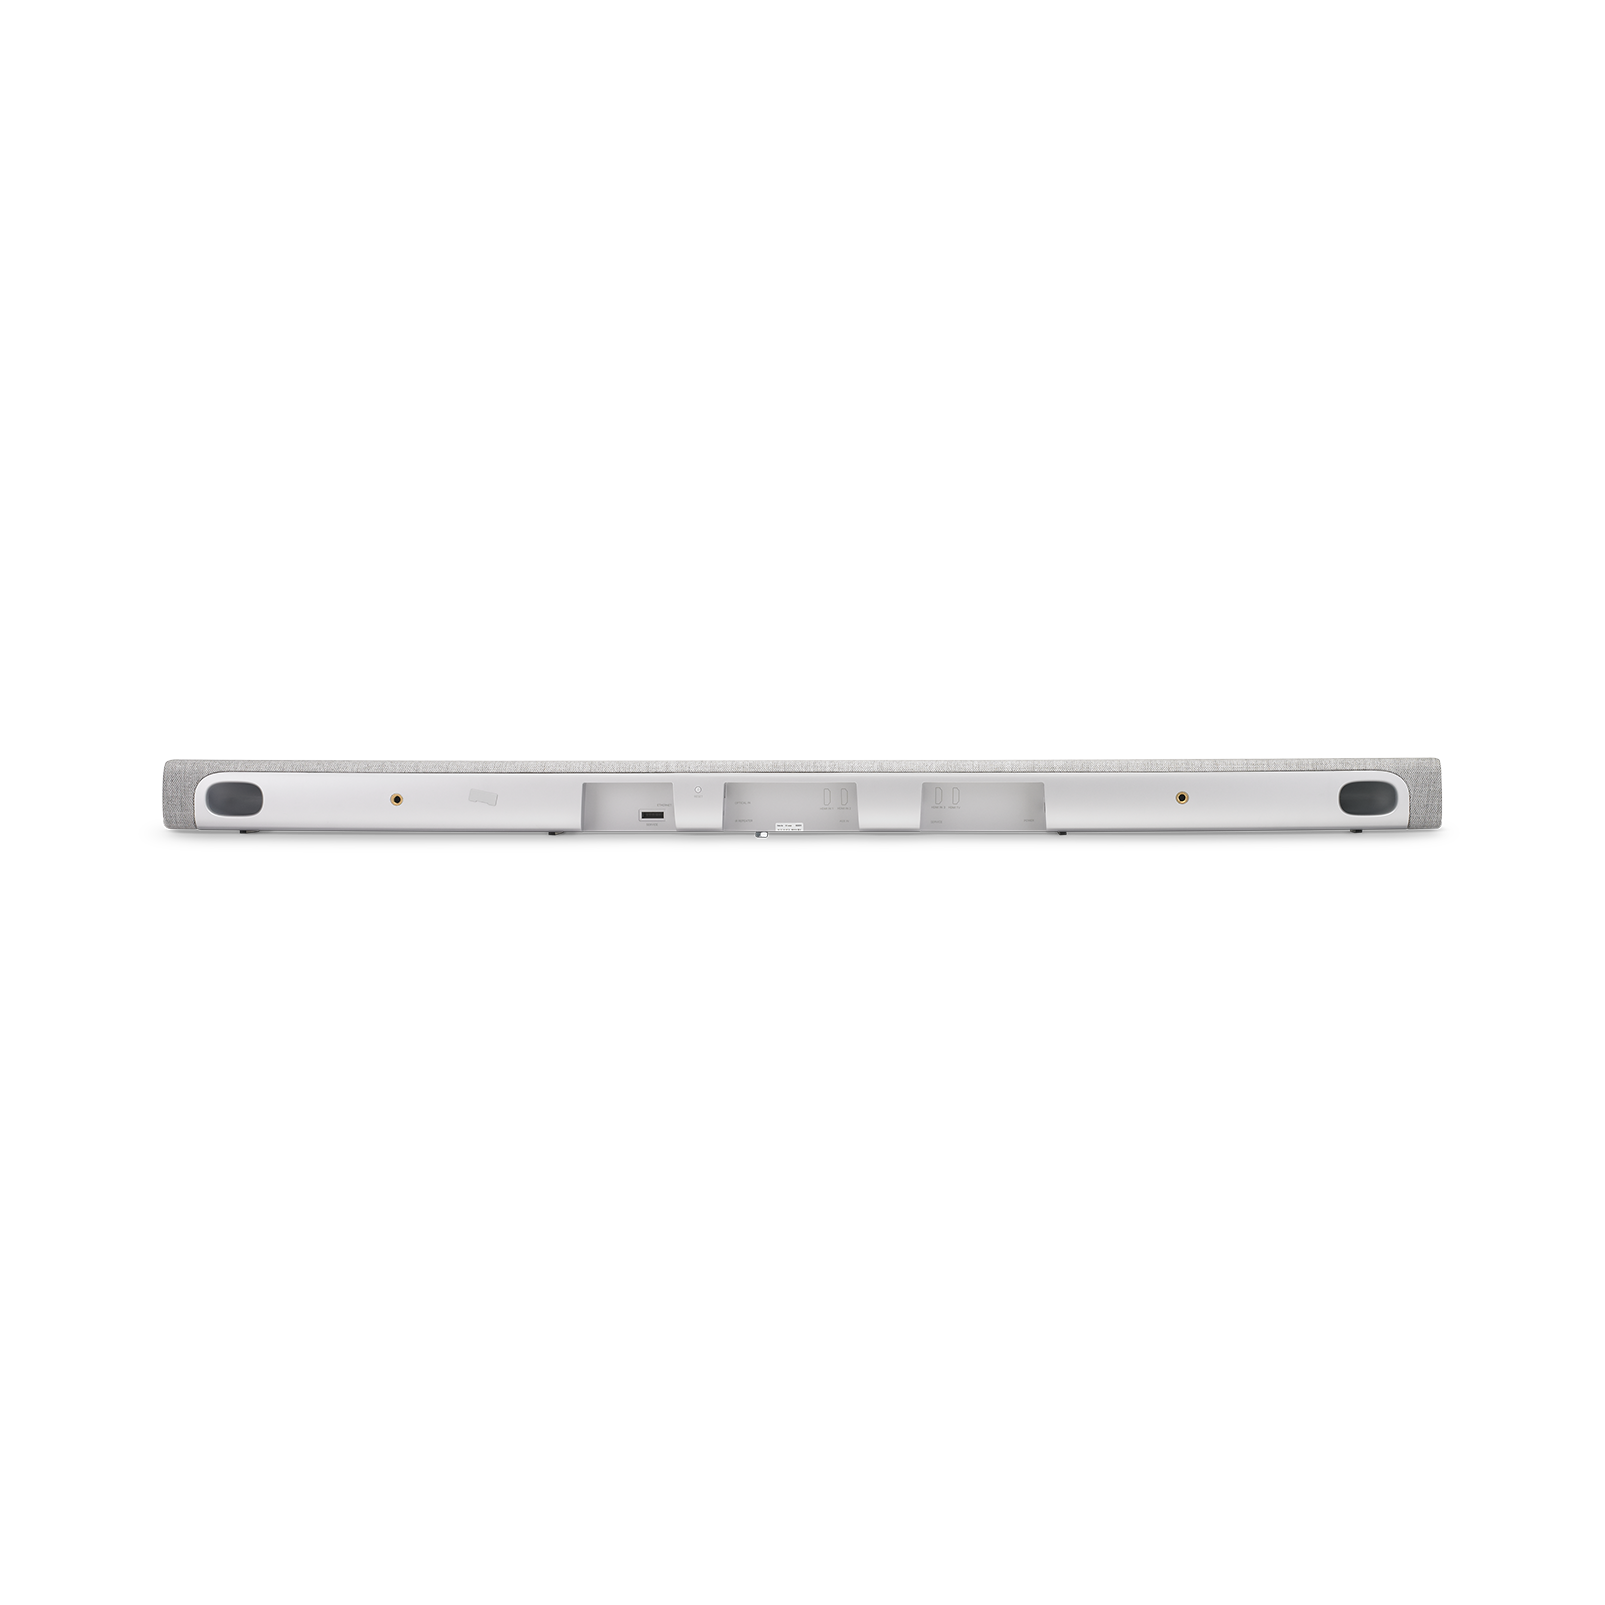 Harman Kardon Citation Bar - Grey - The smartest soundbar for movies and music - Back